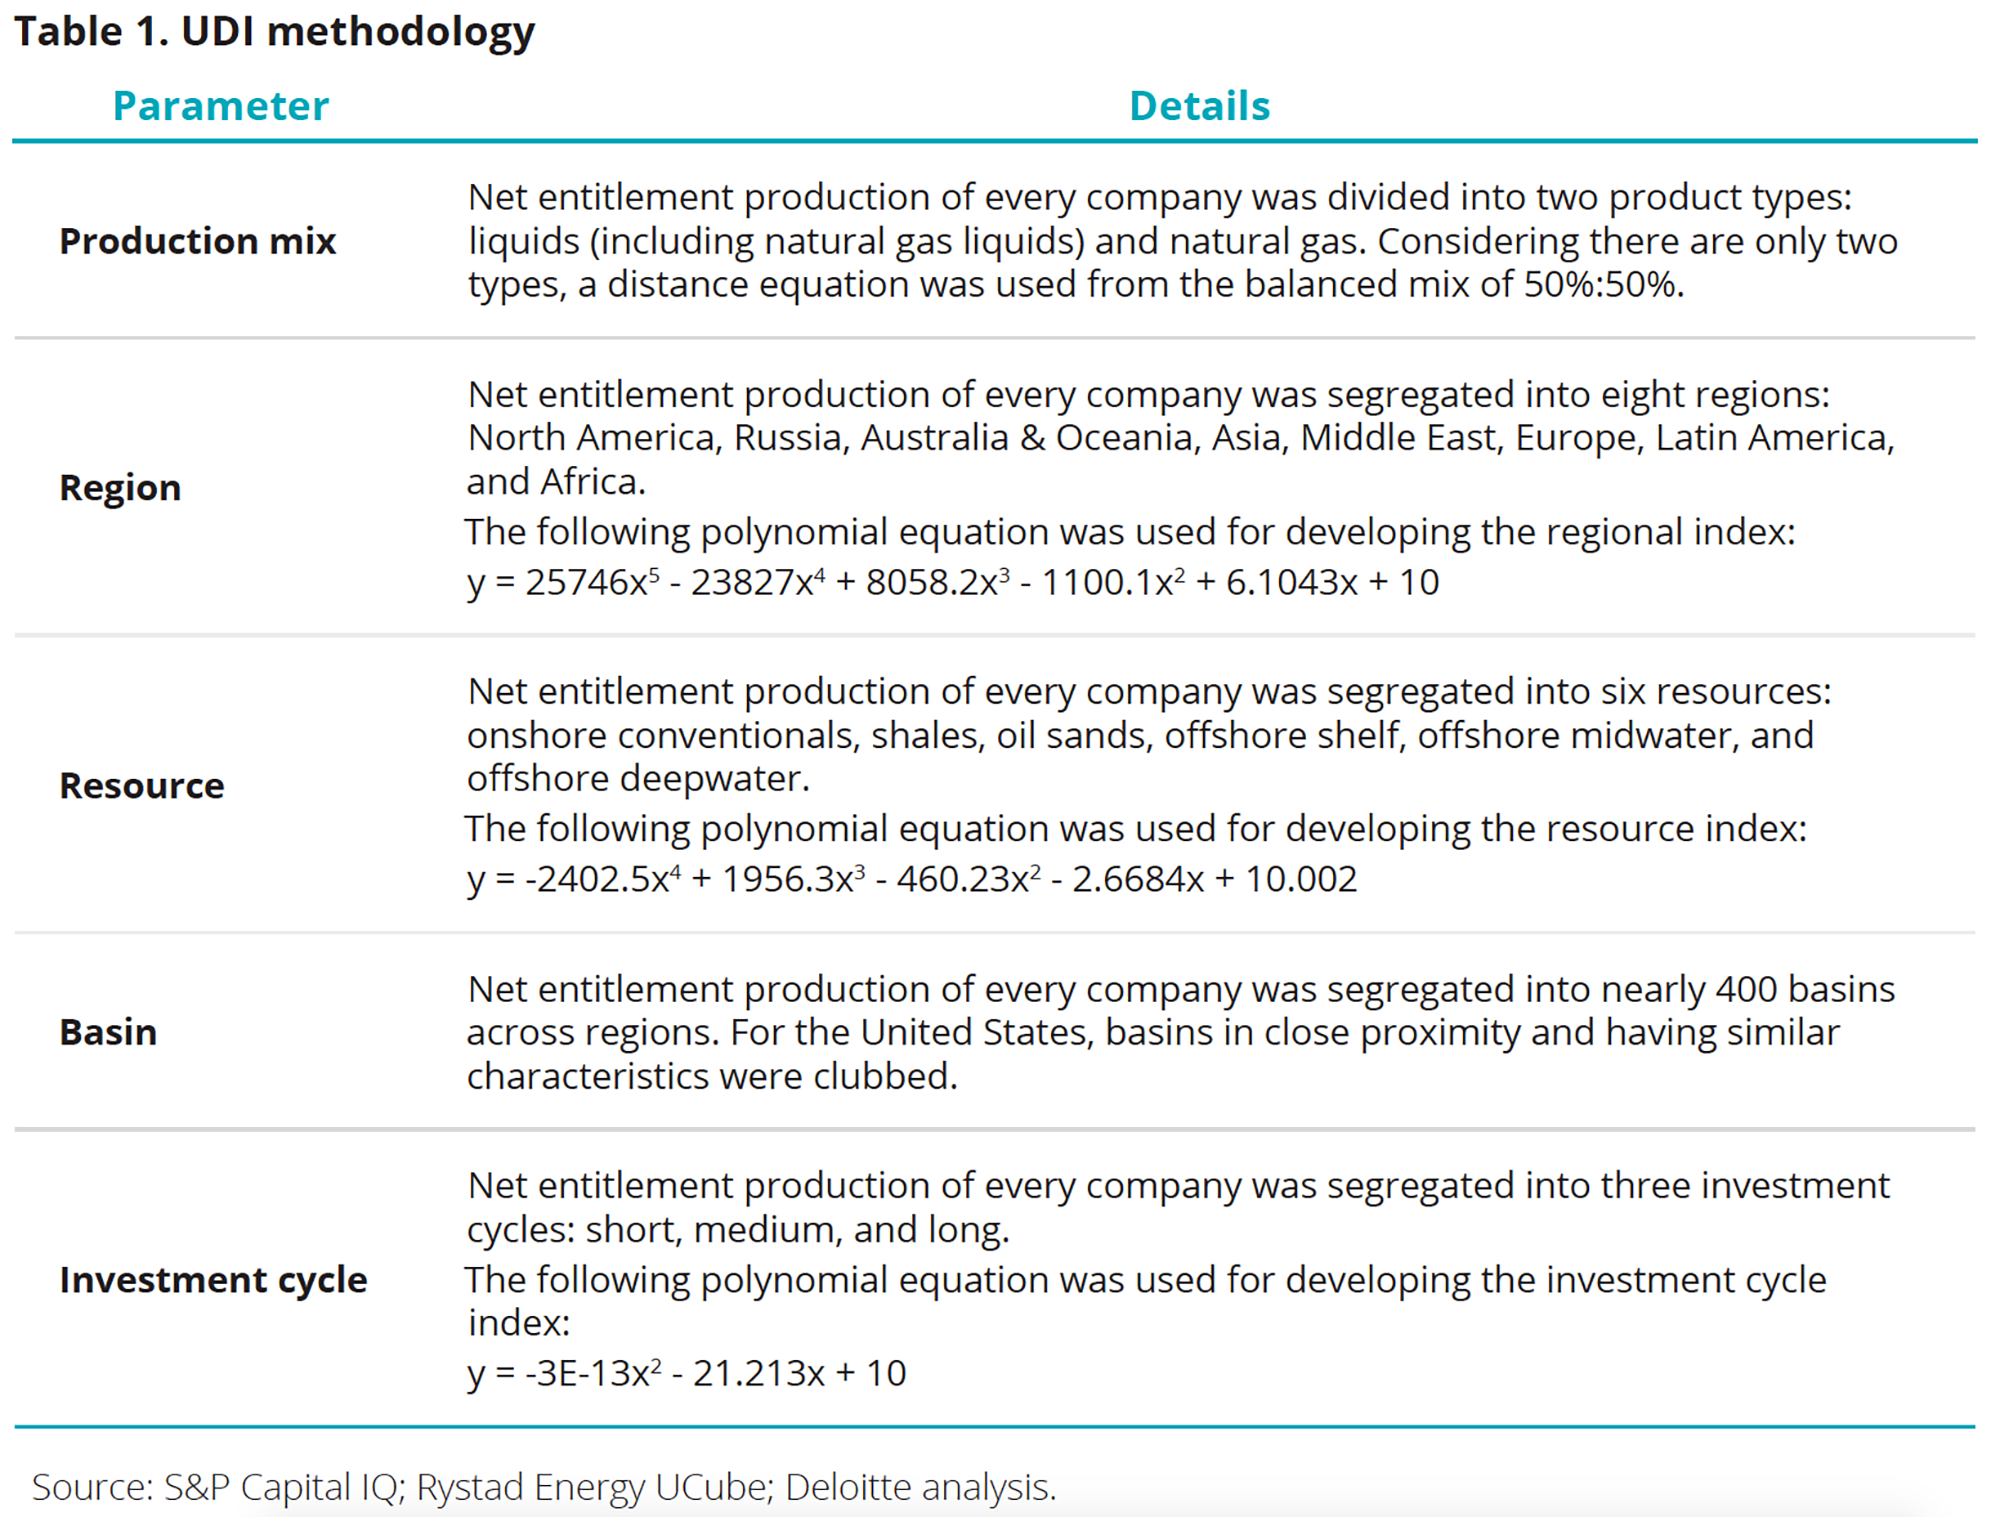 UDI methodology